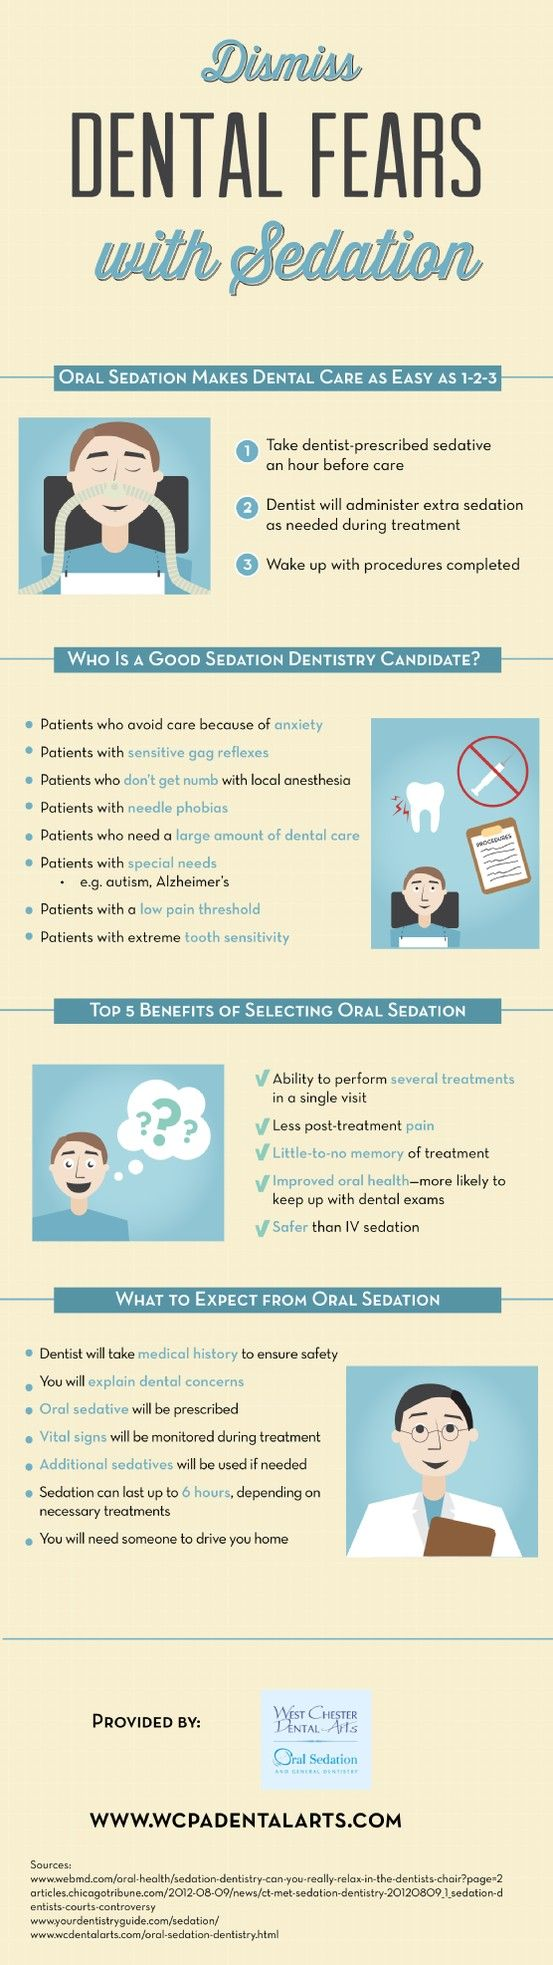 Oral sedation allows dentists to perform multiple treatments in just one visit to improve a patient's oral health. Check out this infographic from a dentist in West Chester to learn about sedation dentistry and its benefits.